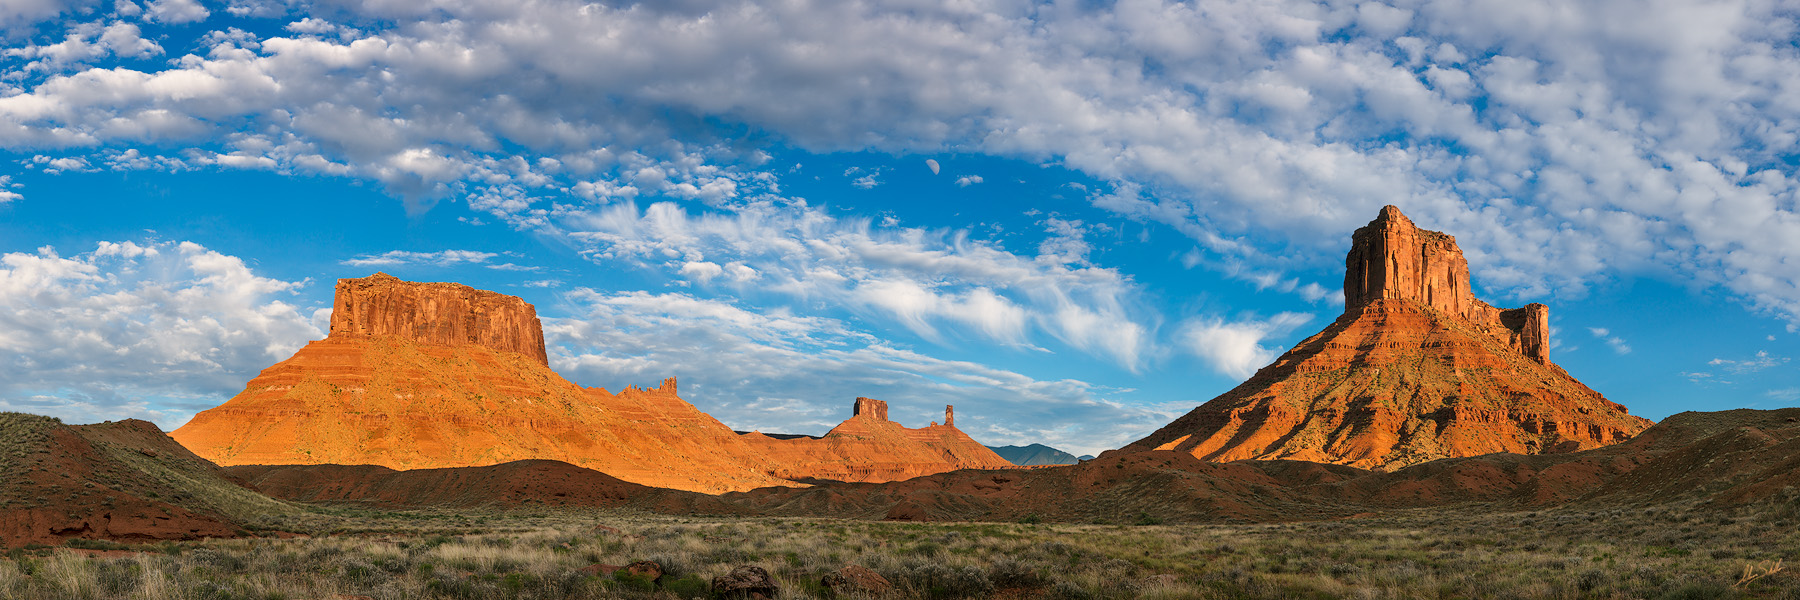 Castle Valley, Moab, Utah, UT, Pano, Panorama, Panoramic, Parriott Mesa, Castleton Tower, Priest and Nuns, Castle Rock, Moon, photo